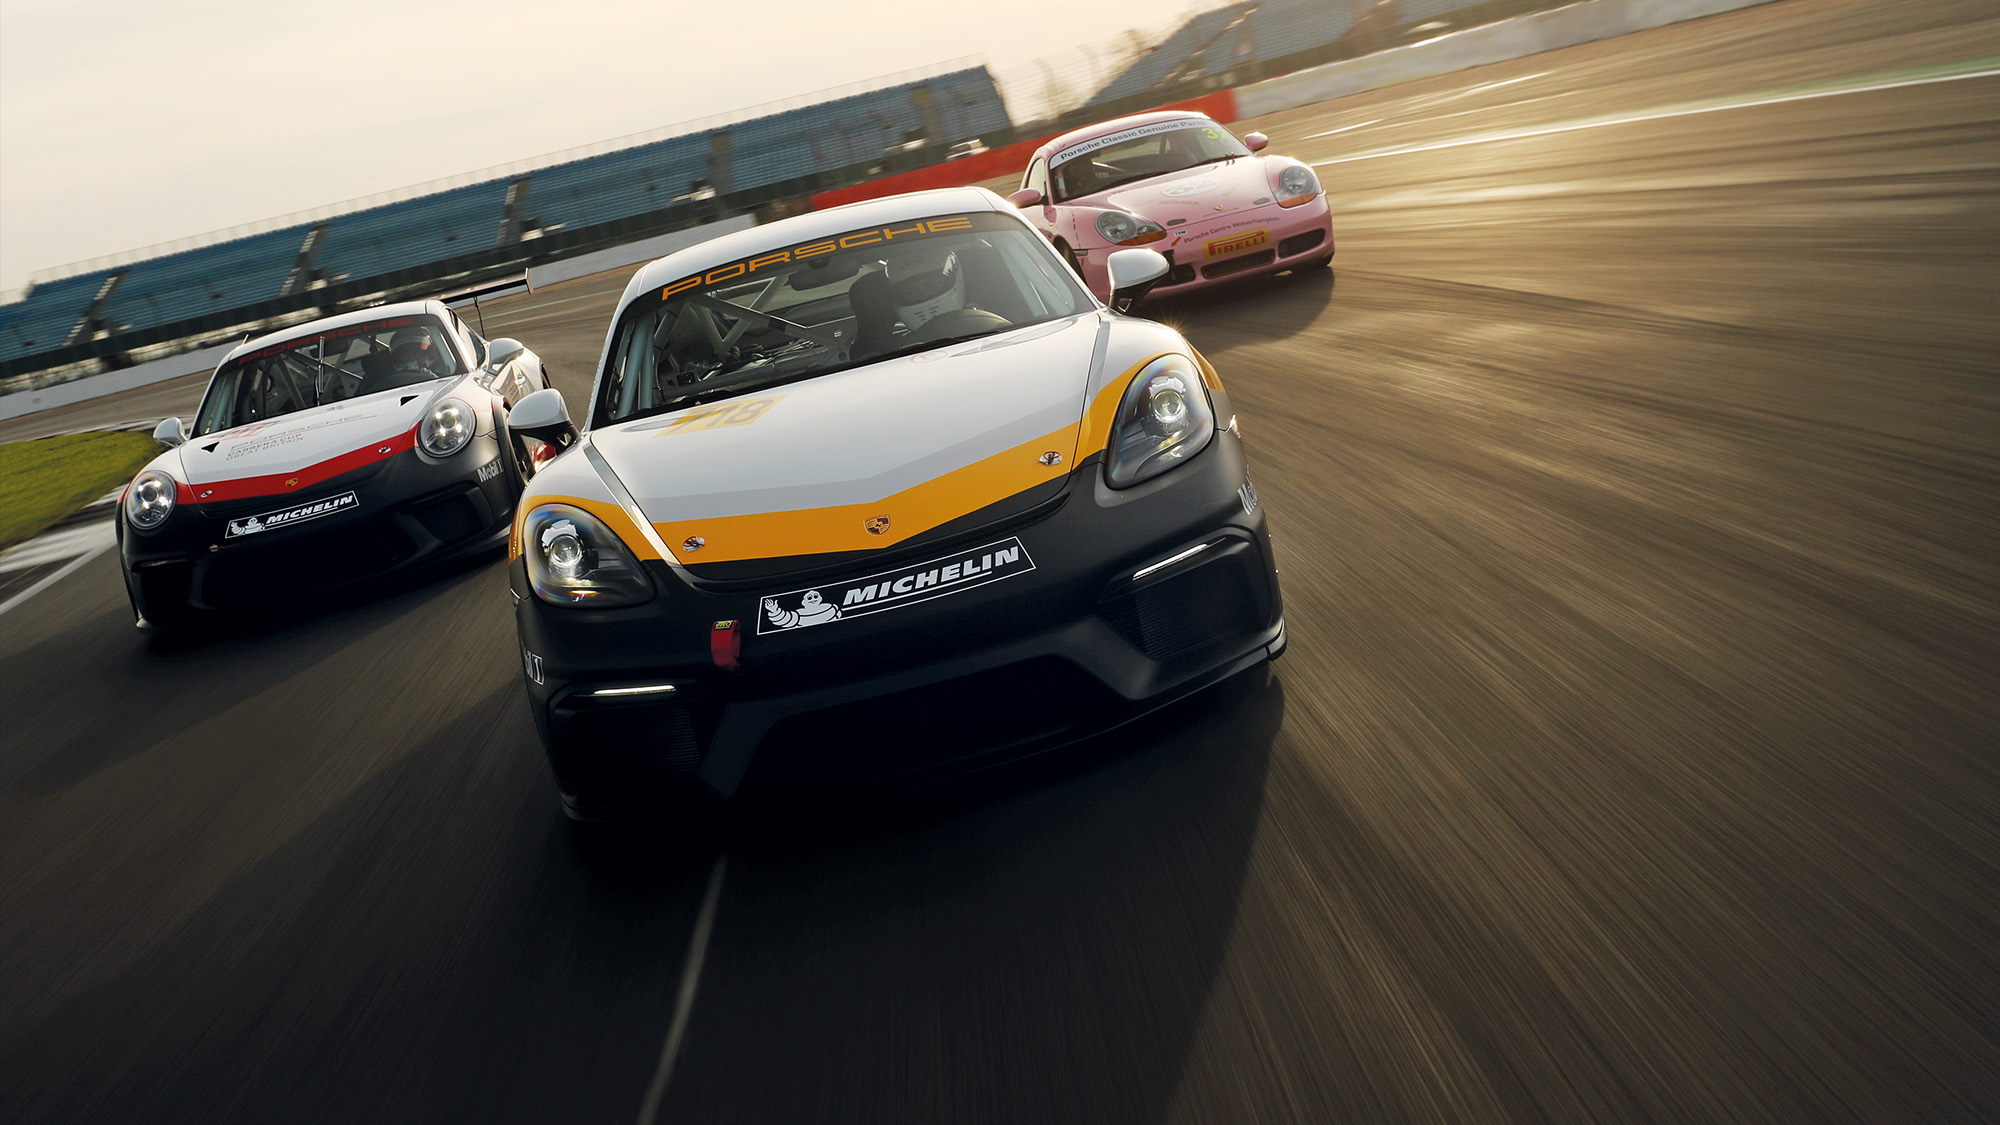 Porsche 986 Boxster S, Cayman GT4 and 911 Gt3 Cup on track at SIlverstone - front